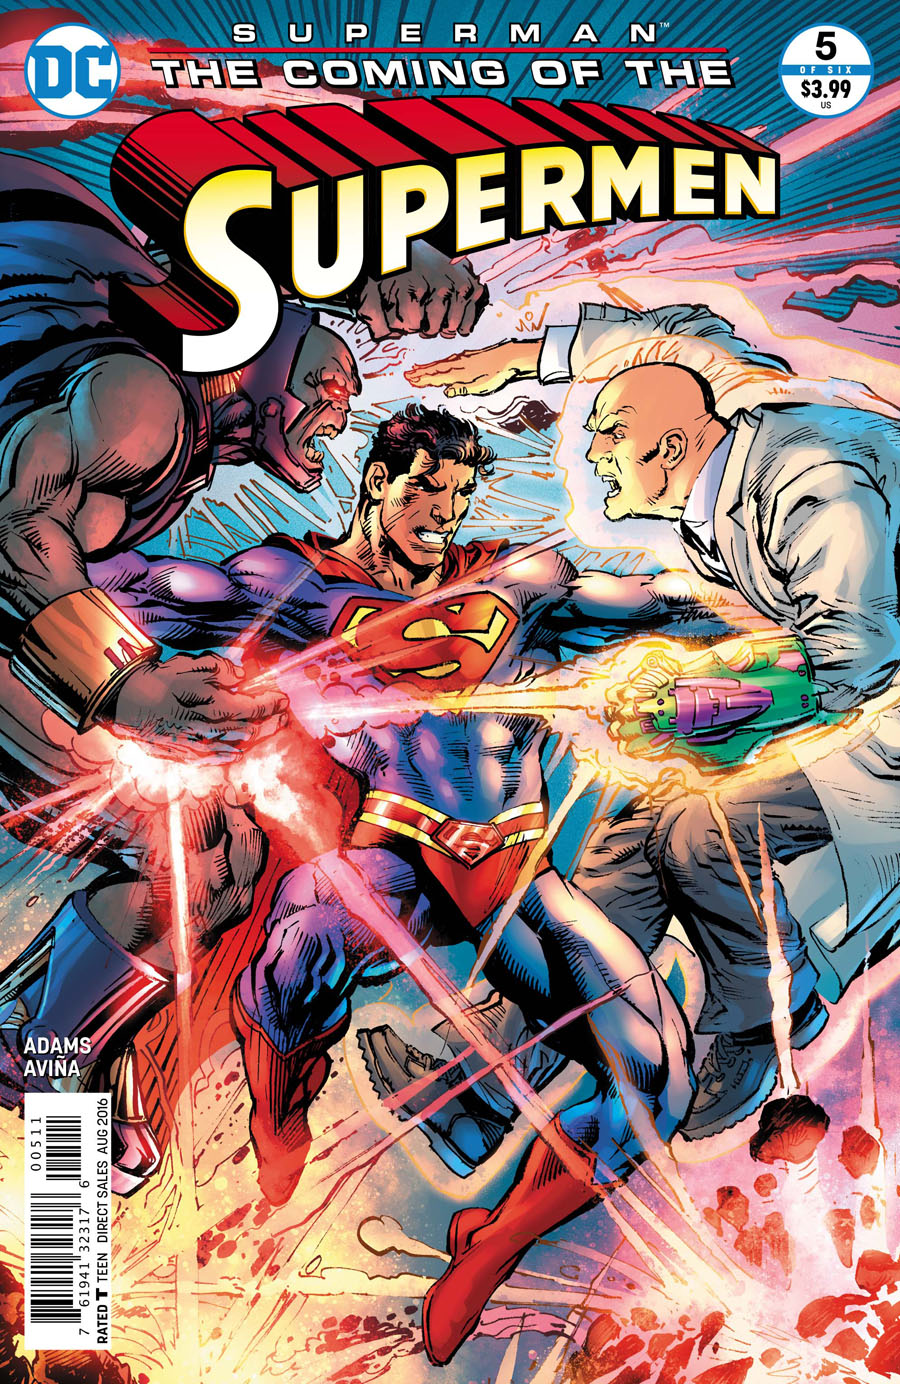 Superman: Coming of the Supermen #5